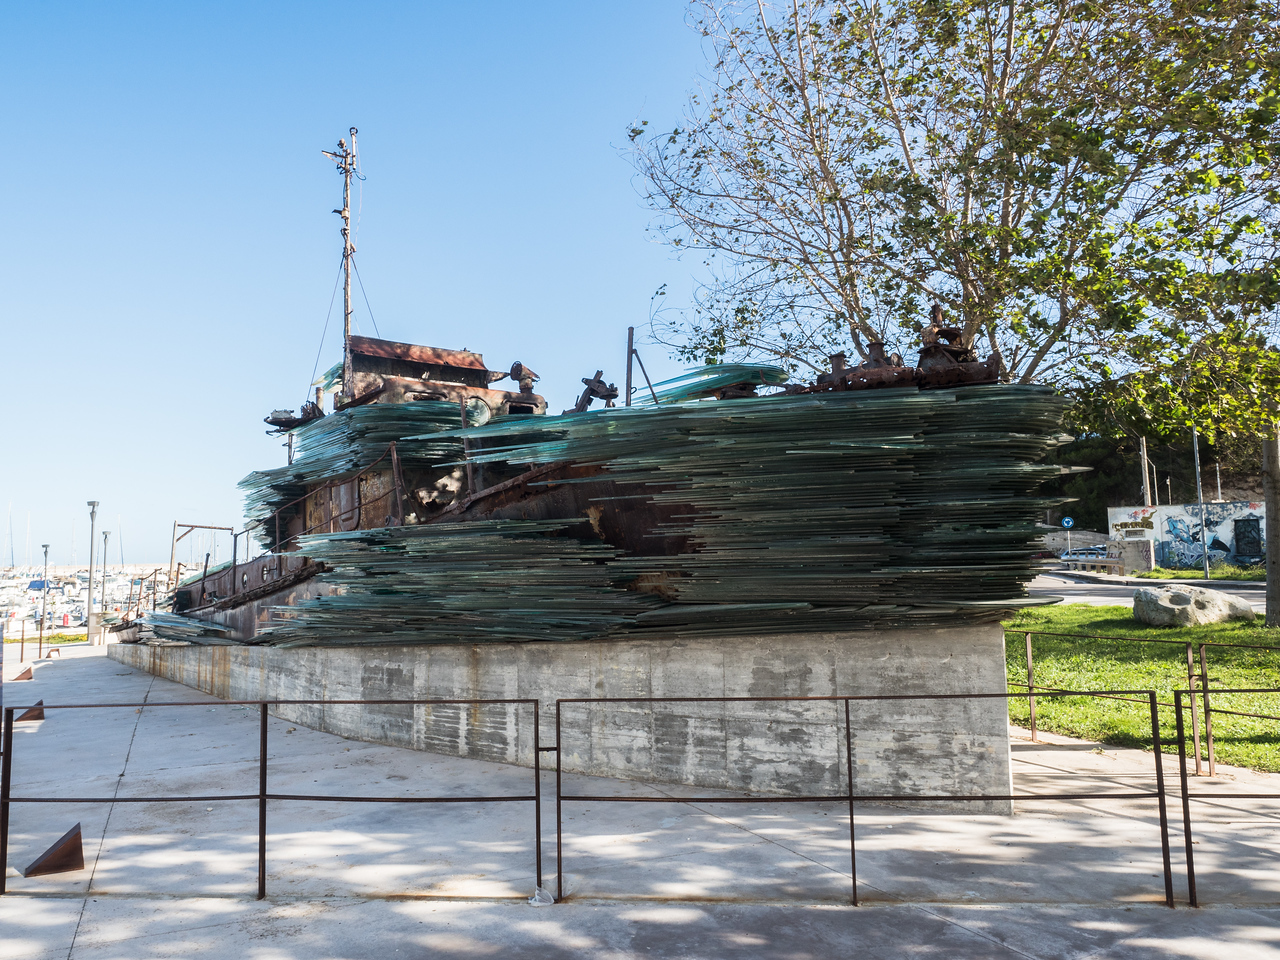 Monument to a ship disaster in the Adriatic off Otranto